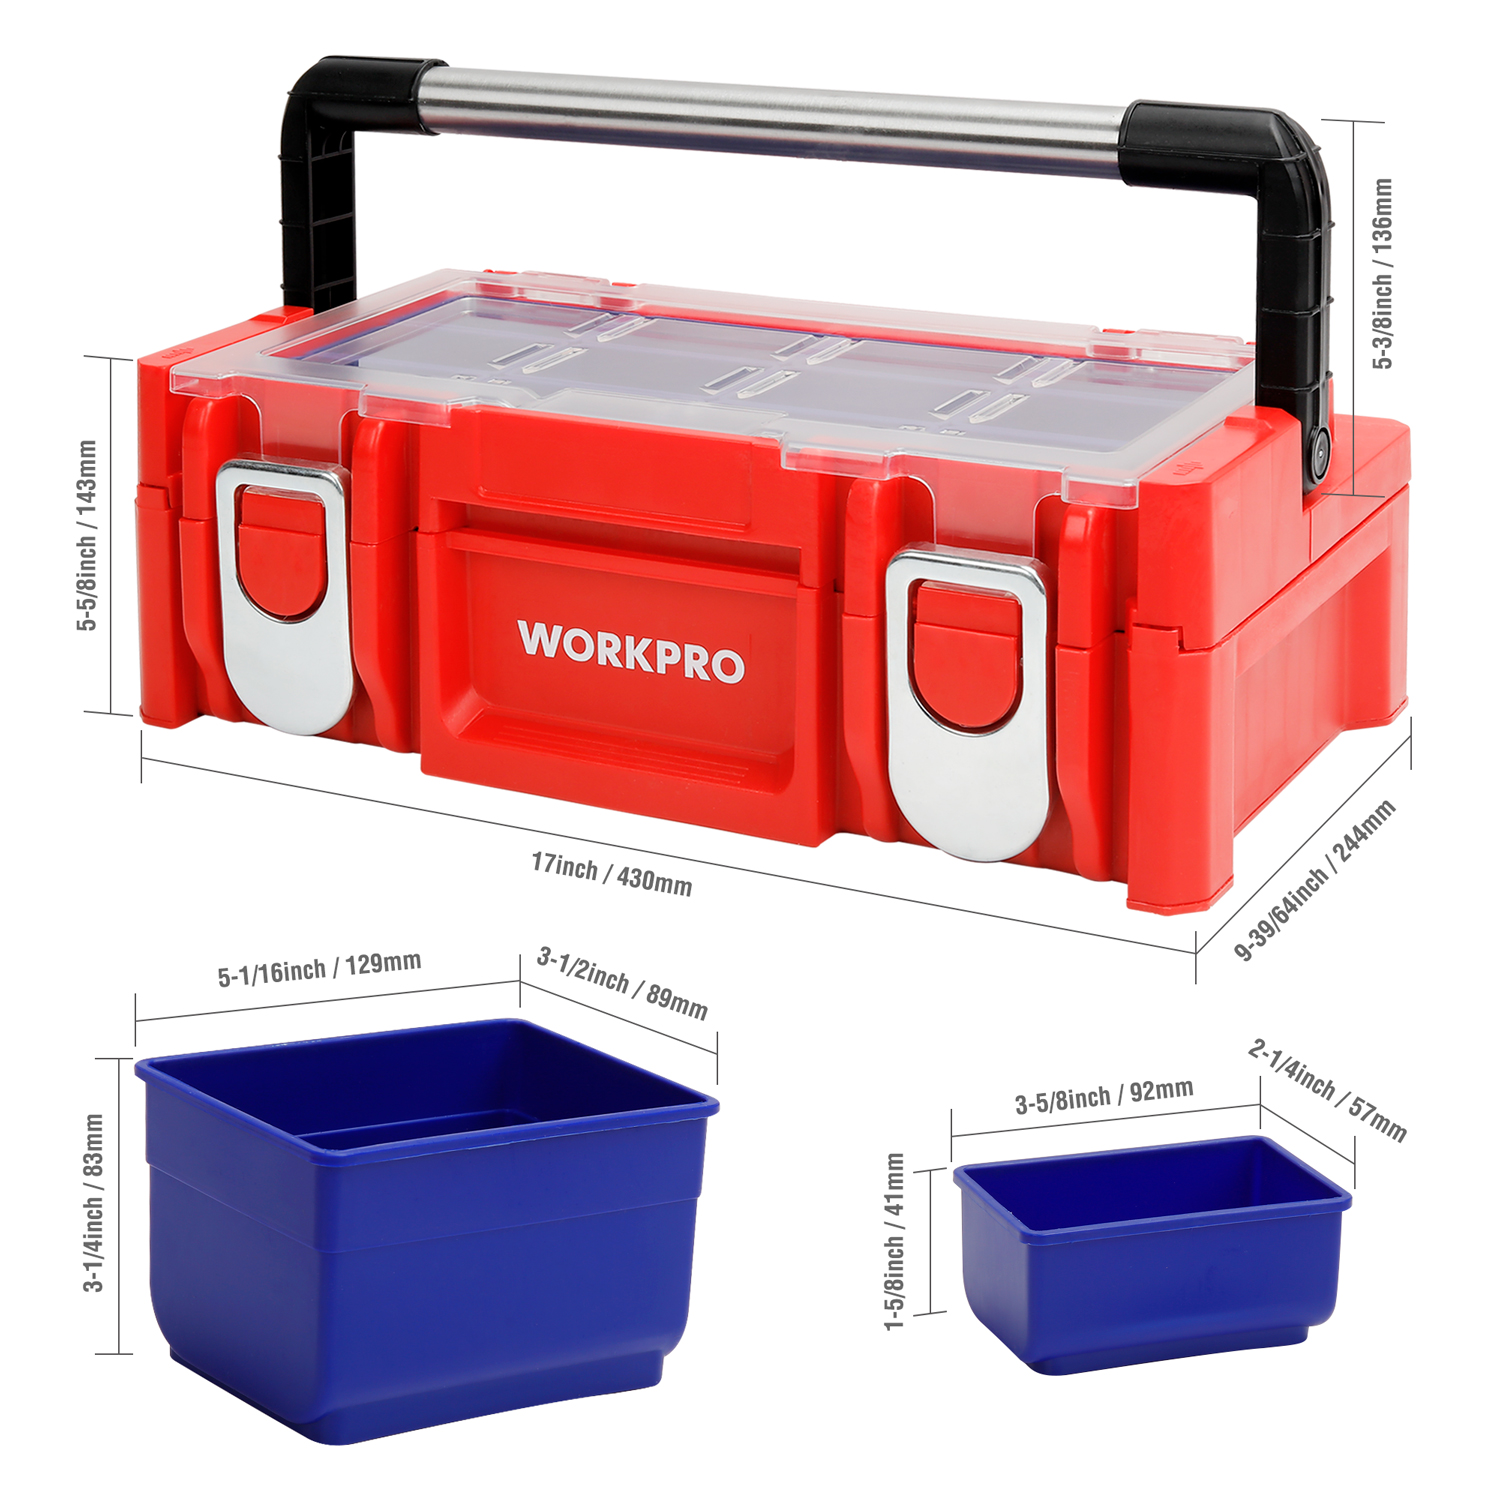 WORKPRO 17-inch Plastic Tool Box